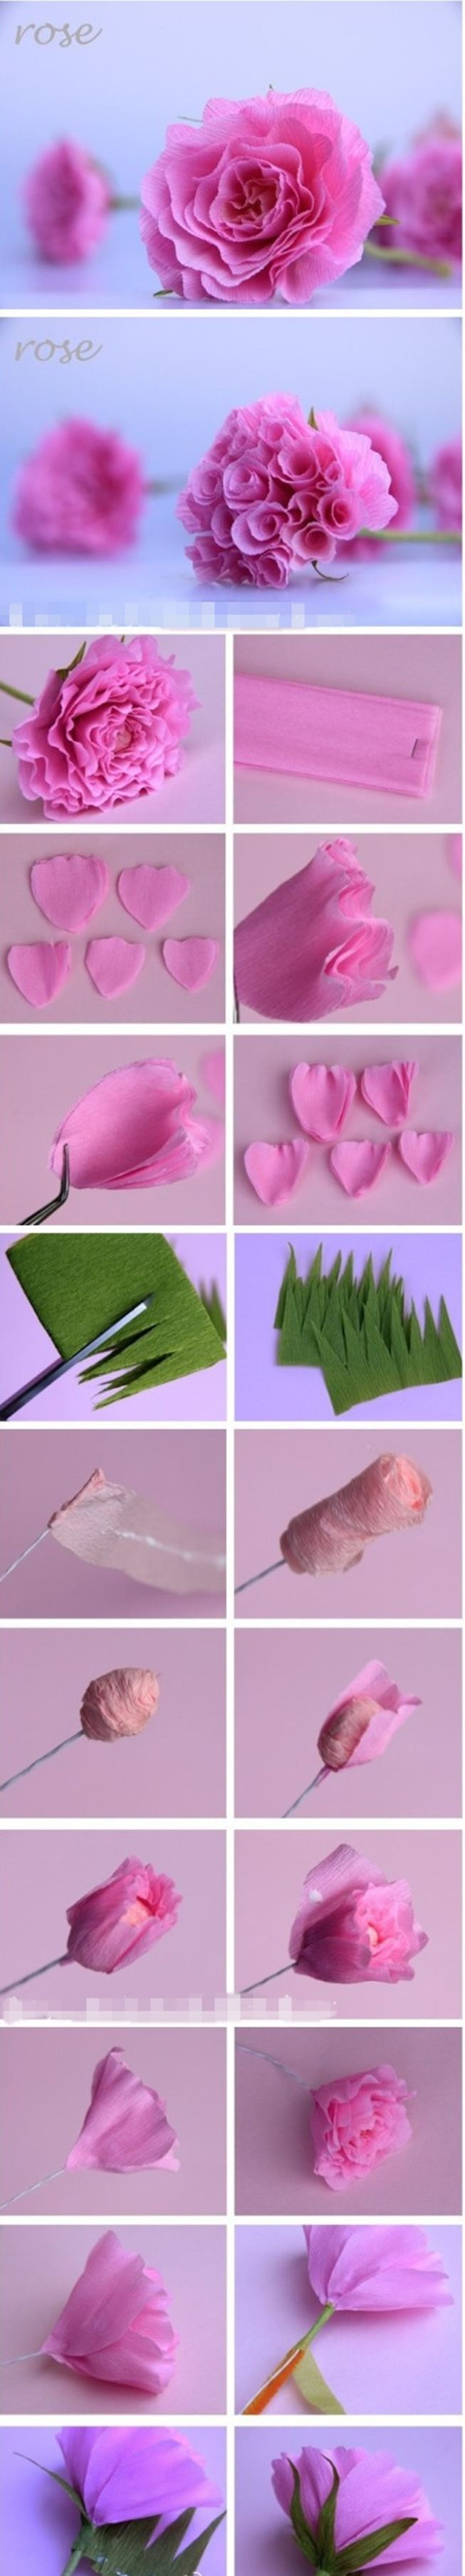 how to make paper flowers using origami the art of paper folding ...